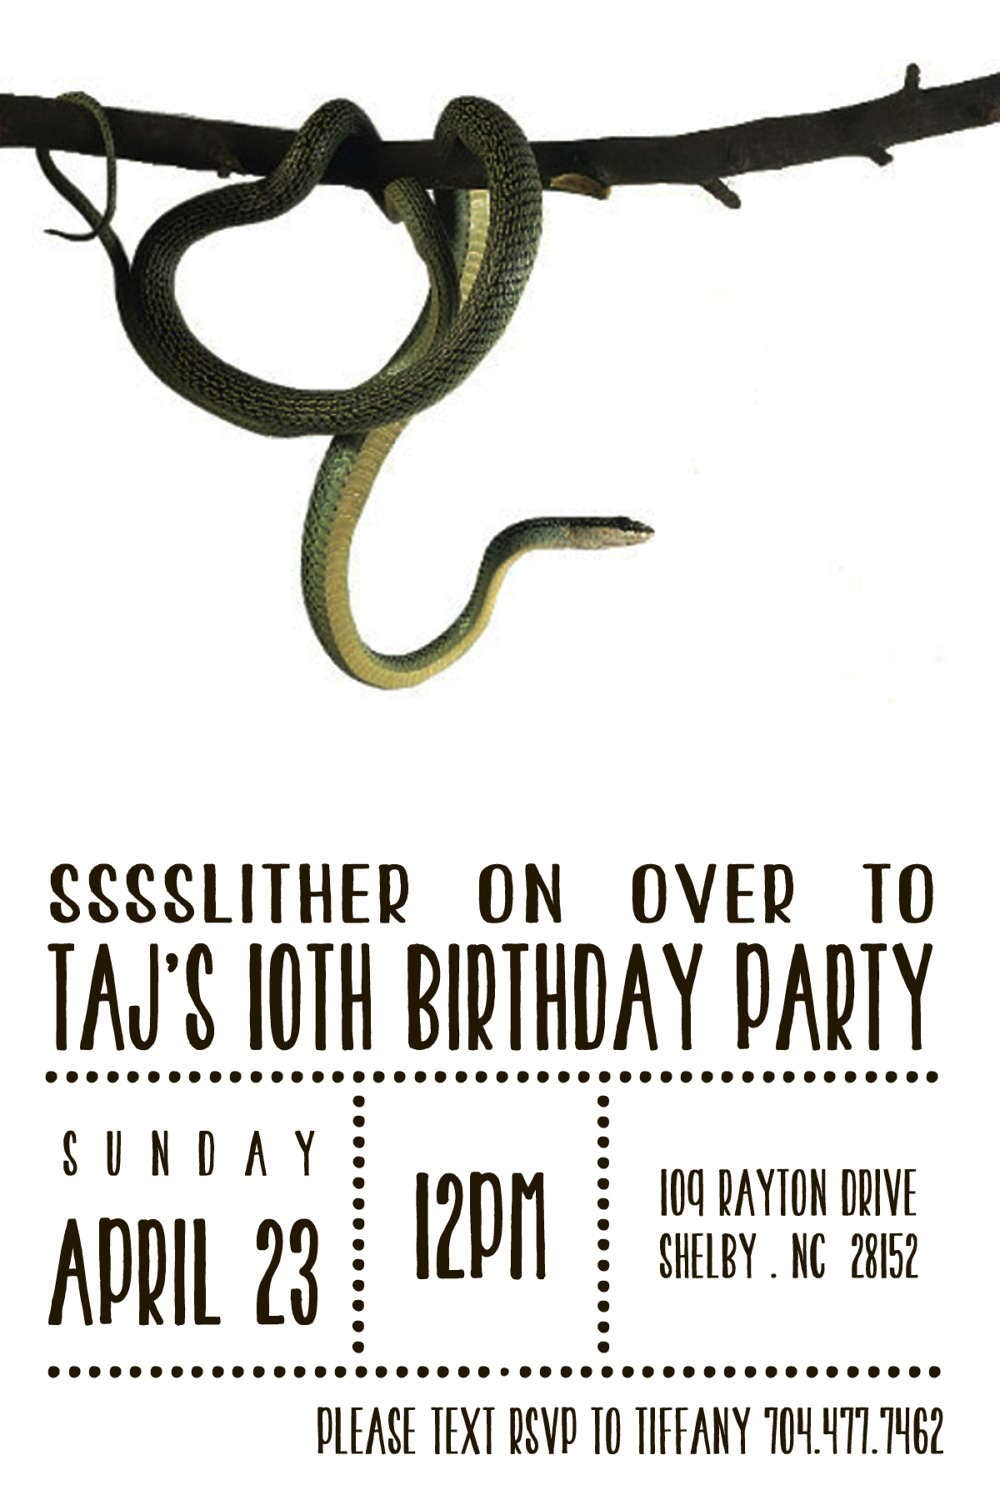 Snake Reptile Birthday Party Invitation Digital Download File | Etsy